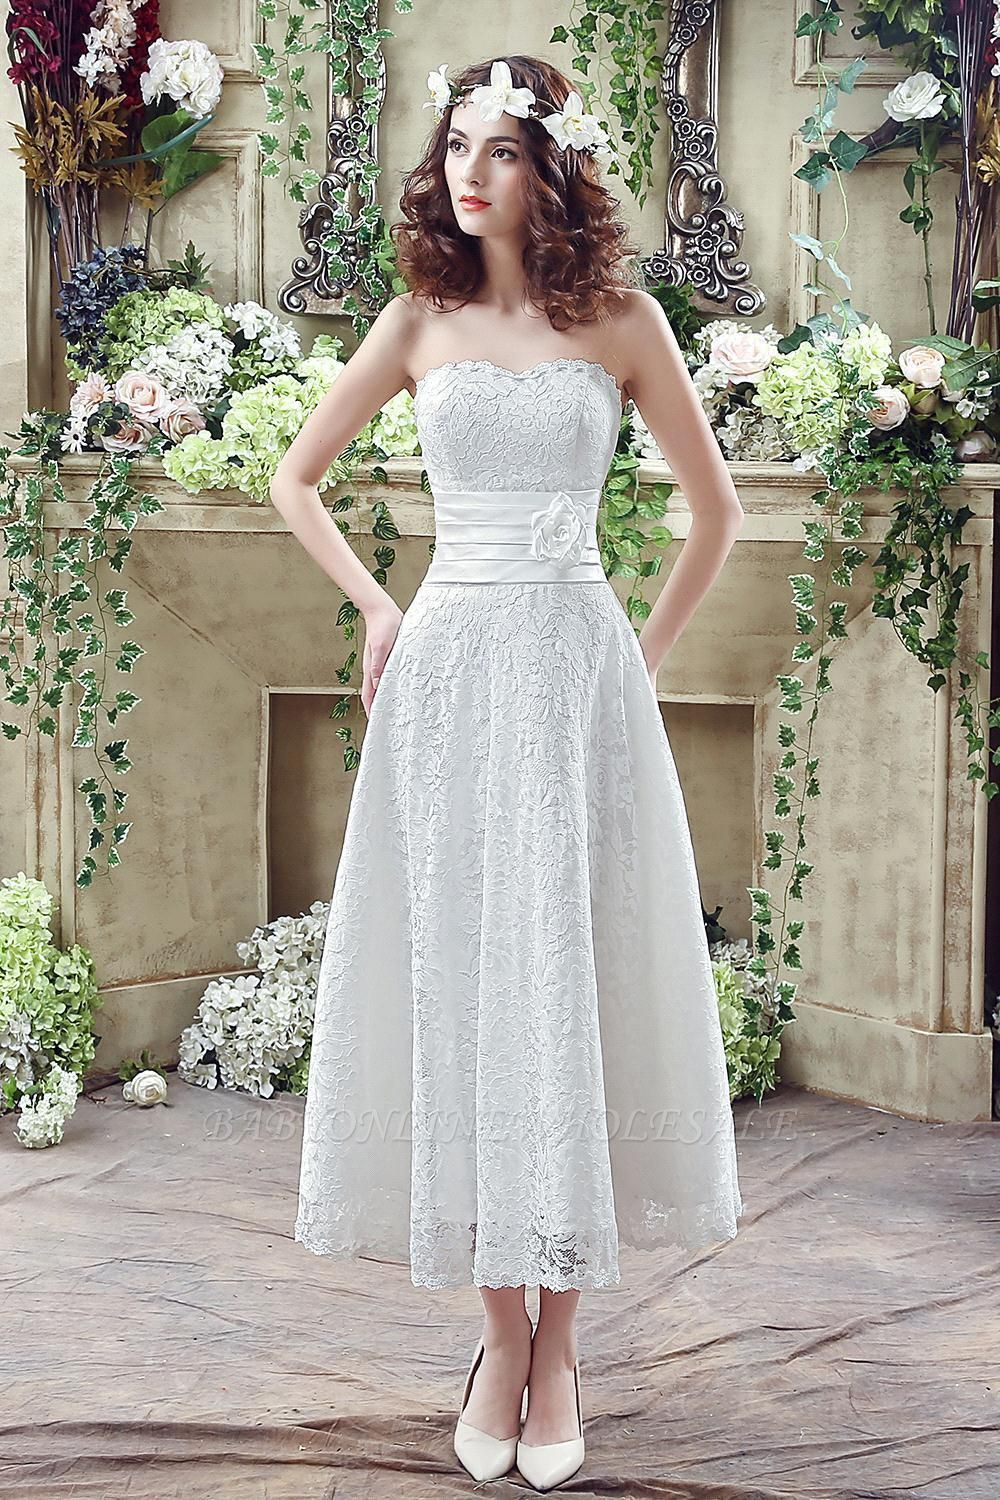 Elegant Sweetheart Lace Wedding Dress Ankle Length Empire Bridal Gown